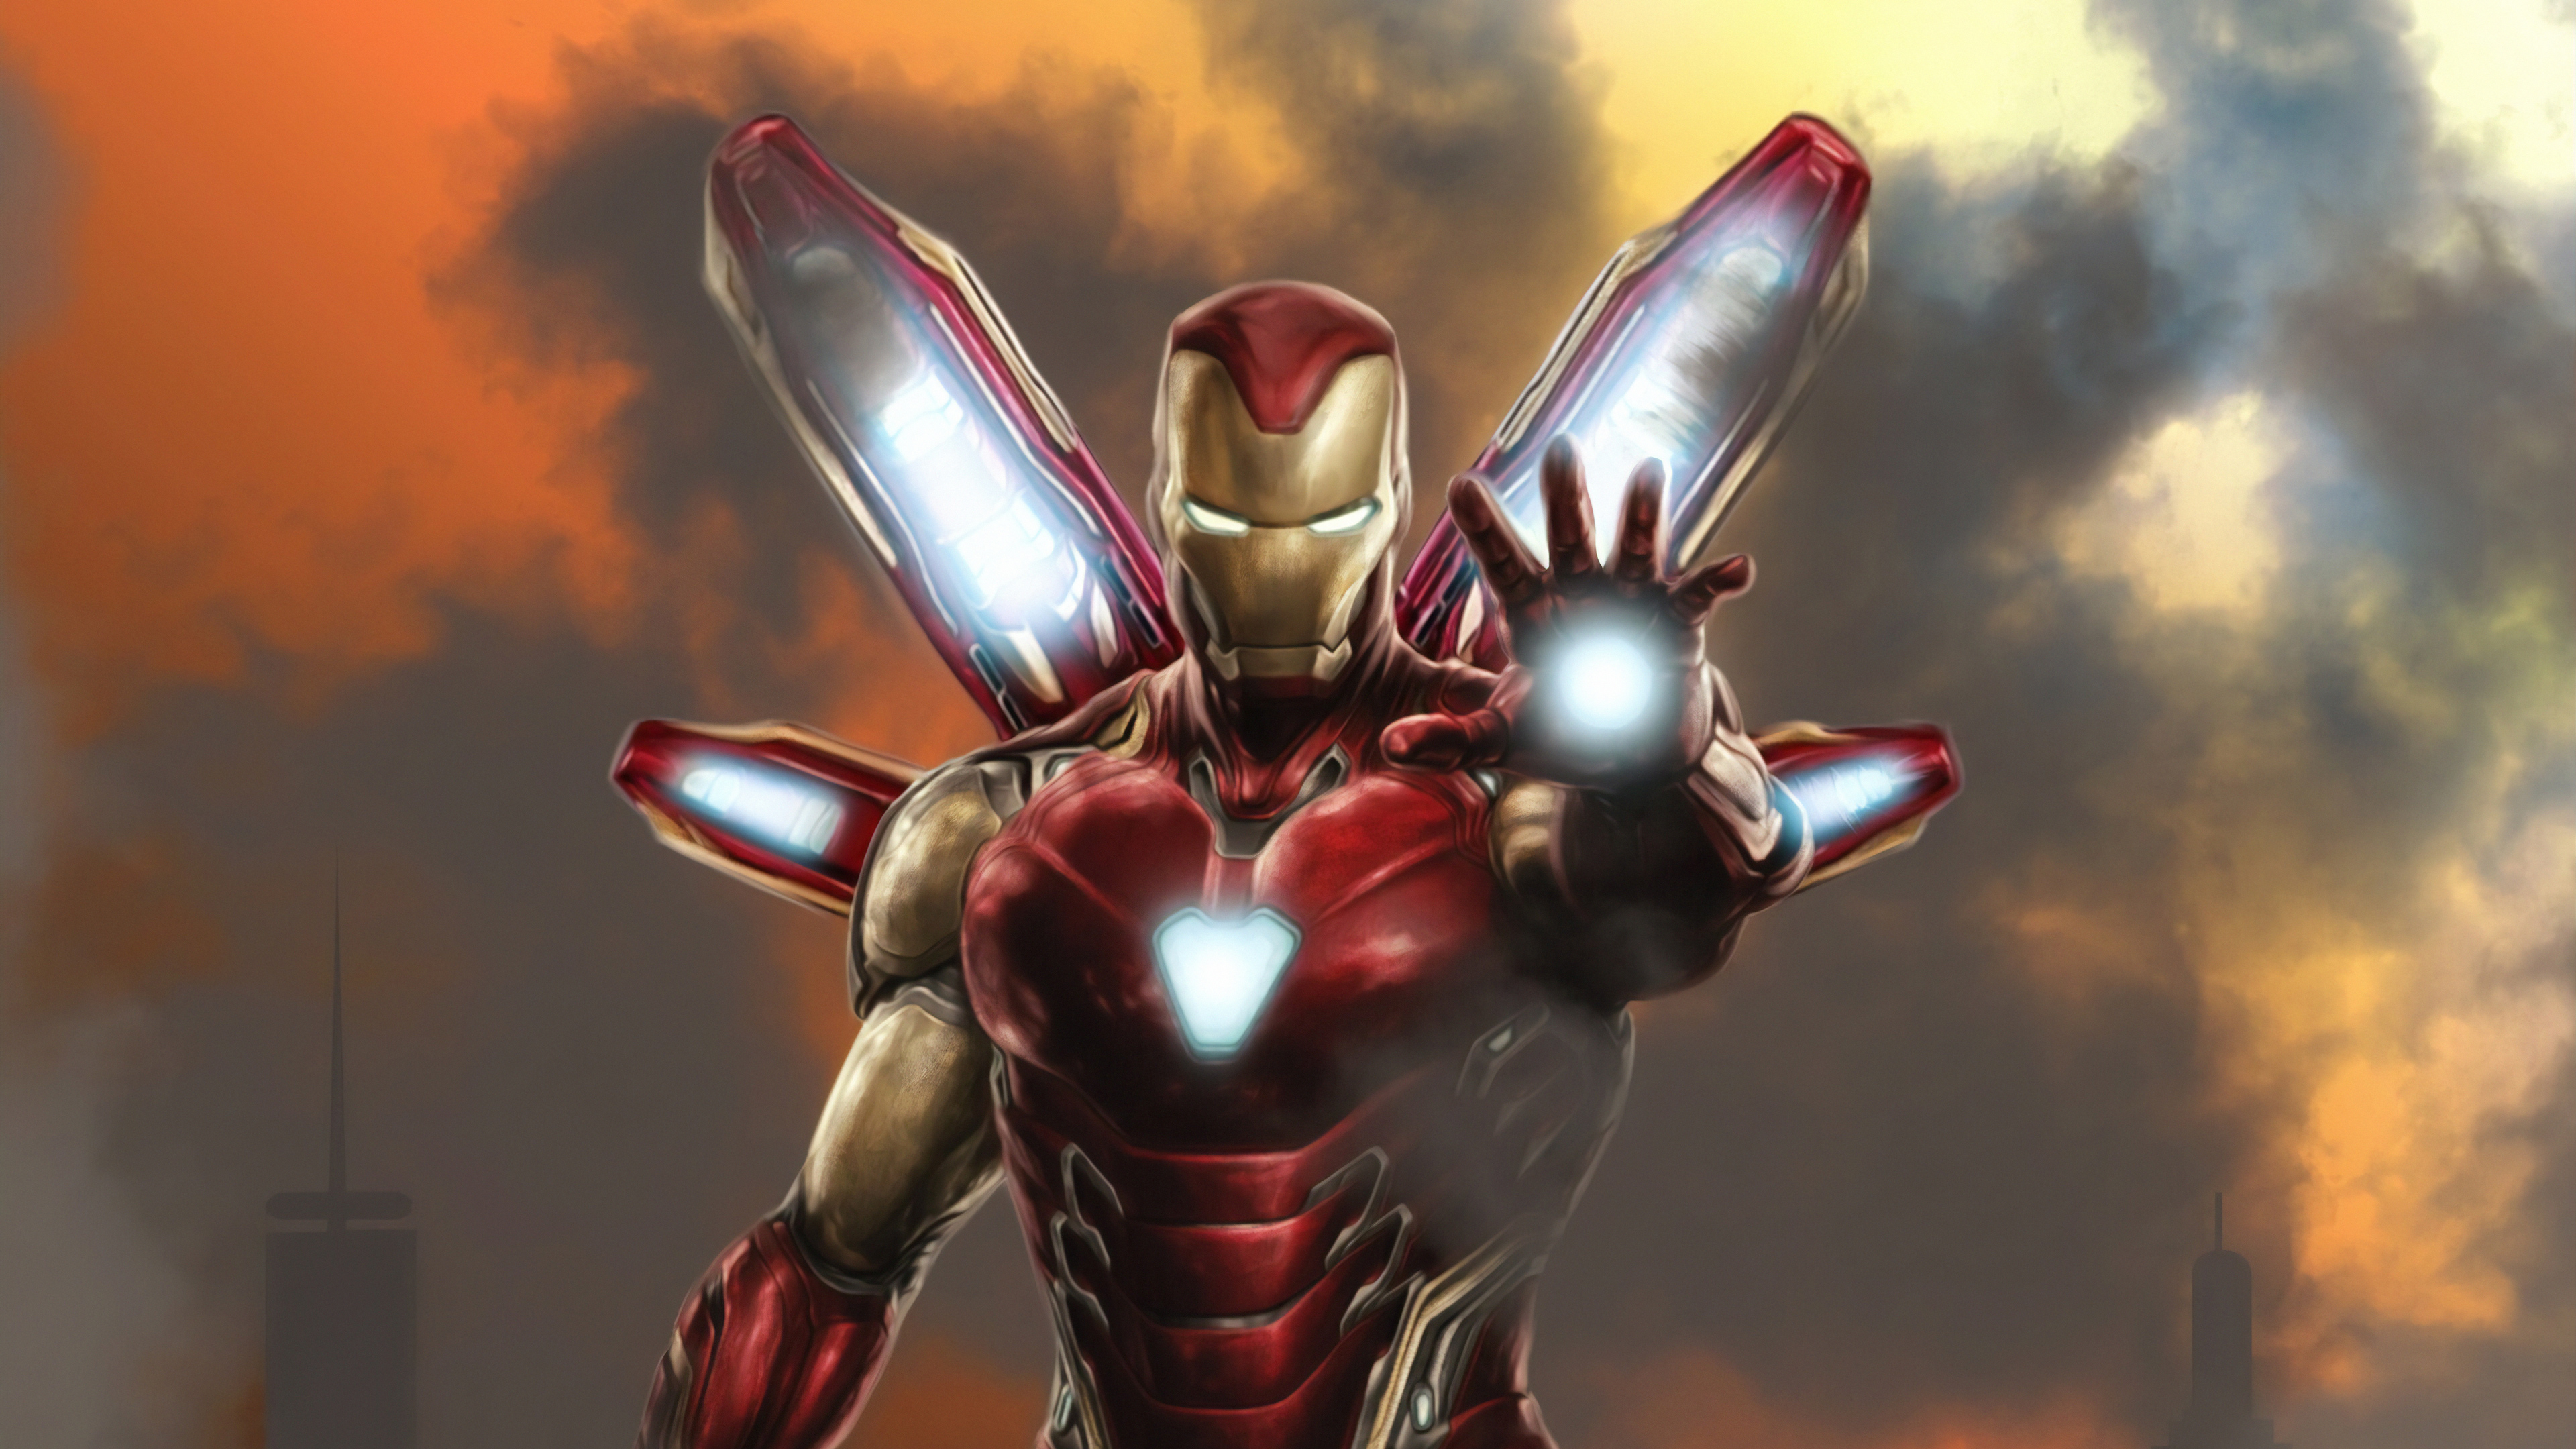 new suit iron man 1565053825 - New Suit Iron Man - superheroes wallpapers, iron man wallpapers, hd-wallpapers, digital art wallpapers, artwork wallpapers, artstation wallpapers, 4k-wallpapers